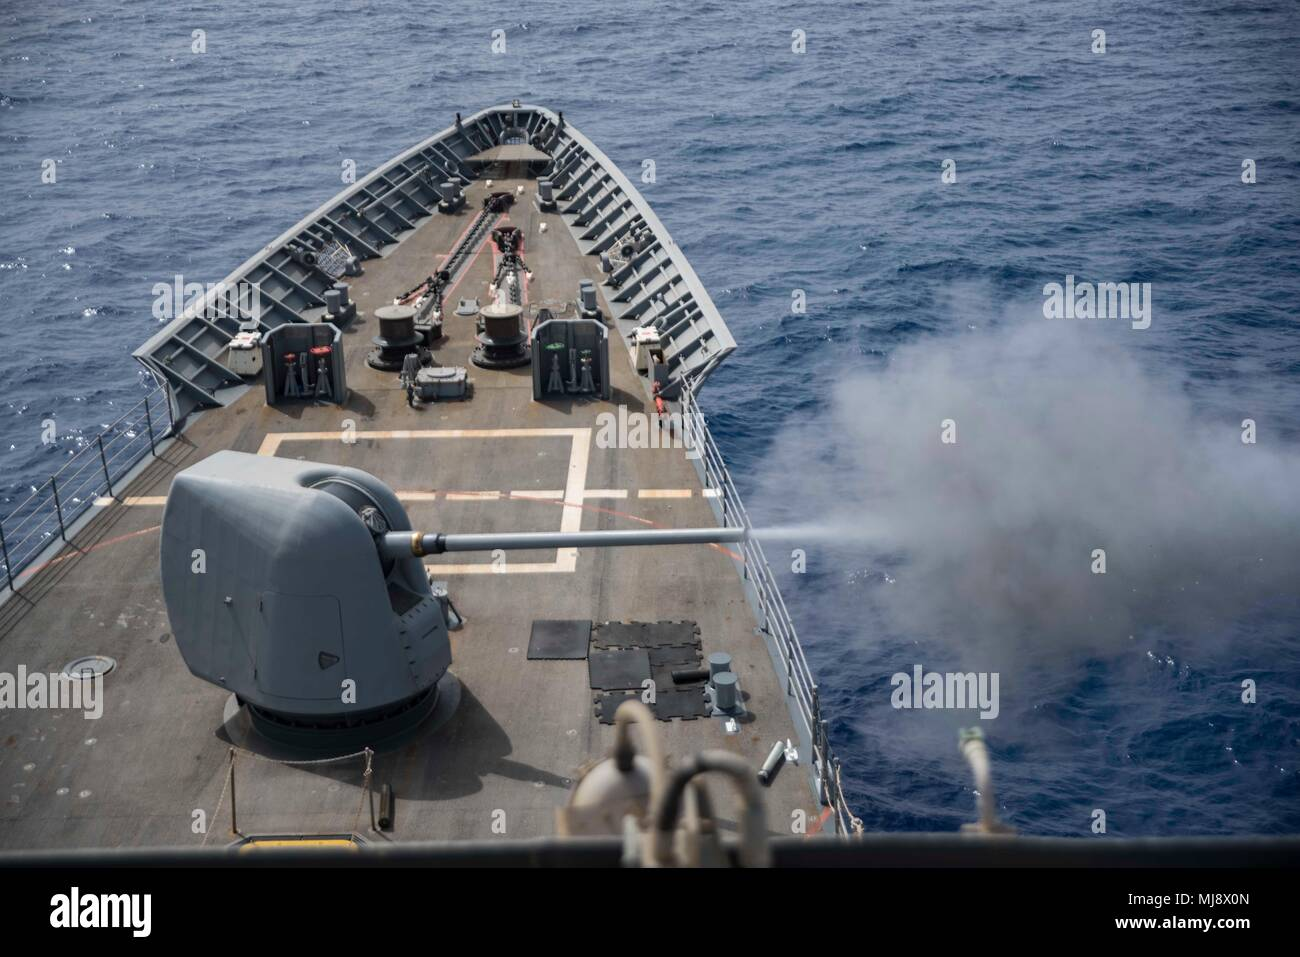 180419-N-DO281-0119  MEDITERRANEAN SEA (April 19, 2018) The guided-missile cruiser USS Monterey (CG 61) fires it's 5-inch gun during a live-fire exercise. Monterey, homeported in Norfolk, Va., and is conducting operations in the U.S. 6th Fleet area of operations in support of U.S. national security interest in Europe. (U.S. Navy photo by Mass Communication Specialist Seaman Trey Fowler/Released) Stock Photo